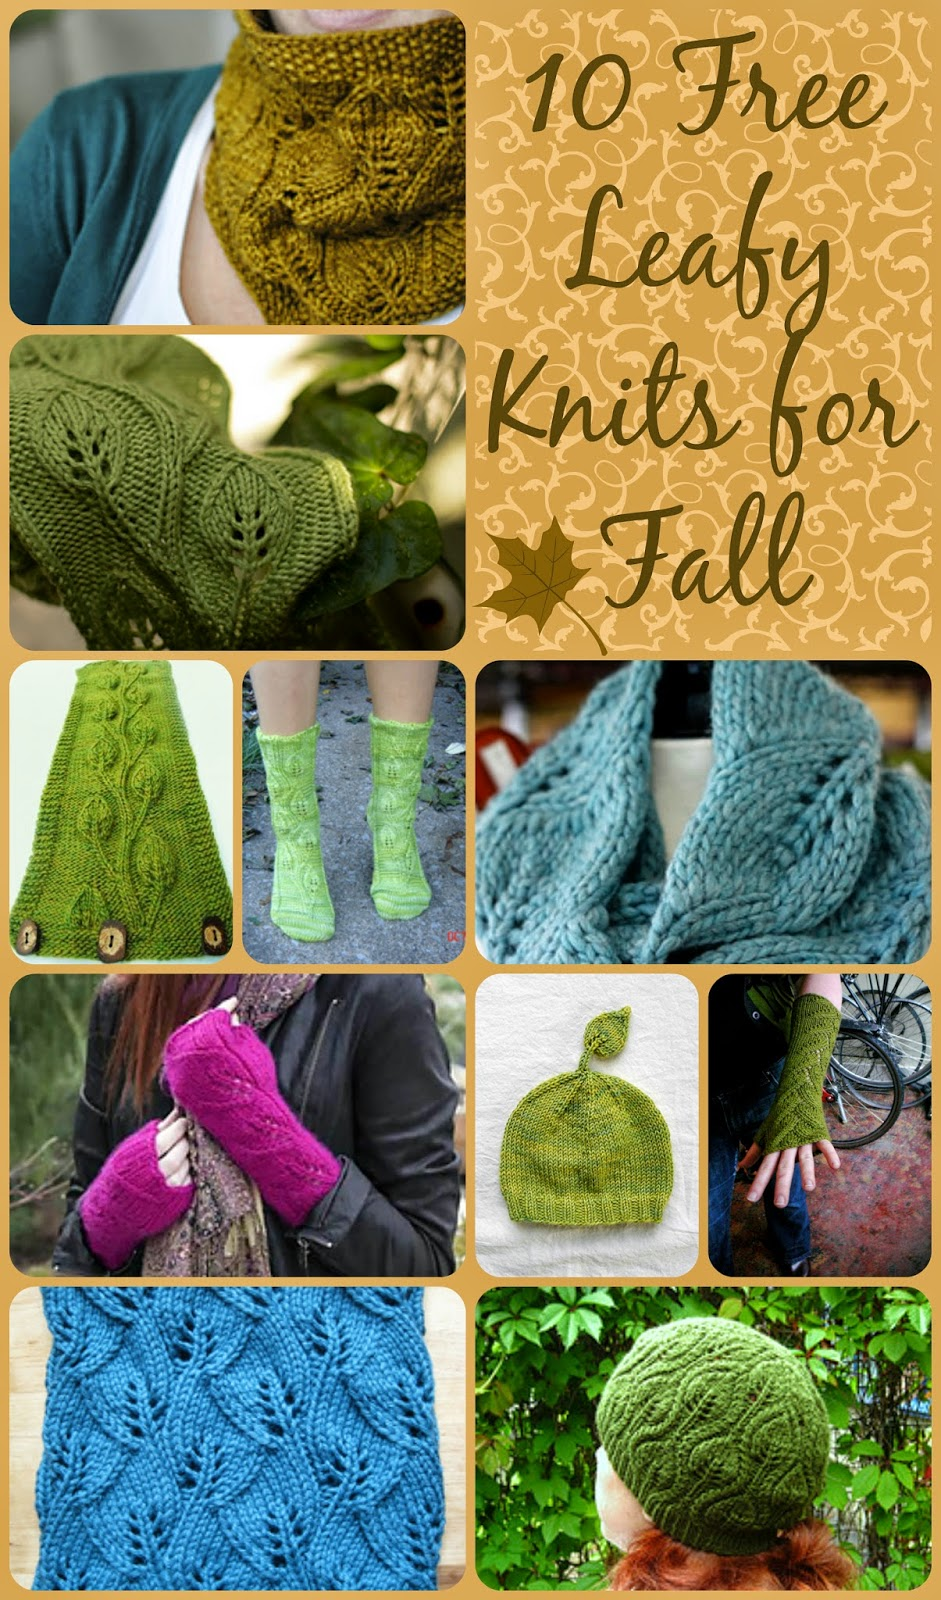 Chaleur: 10 Free Leafy Knits for Fall